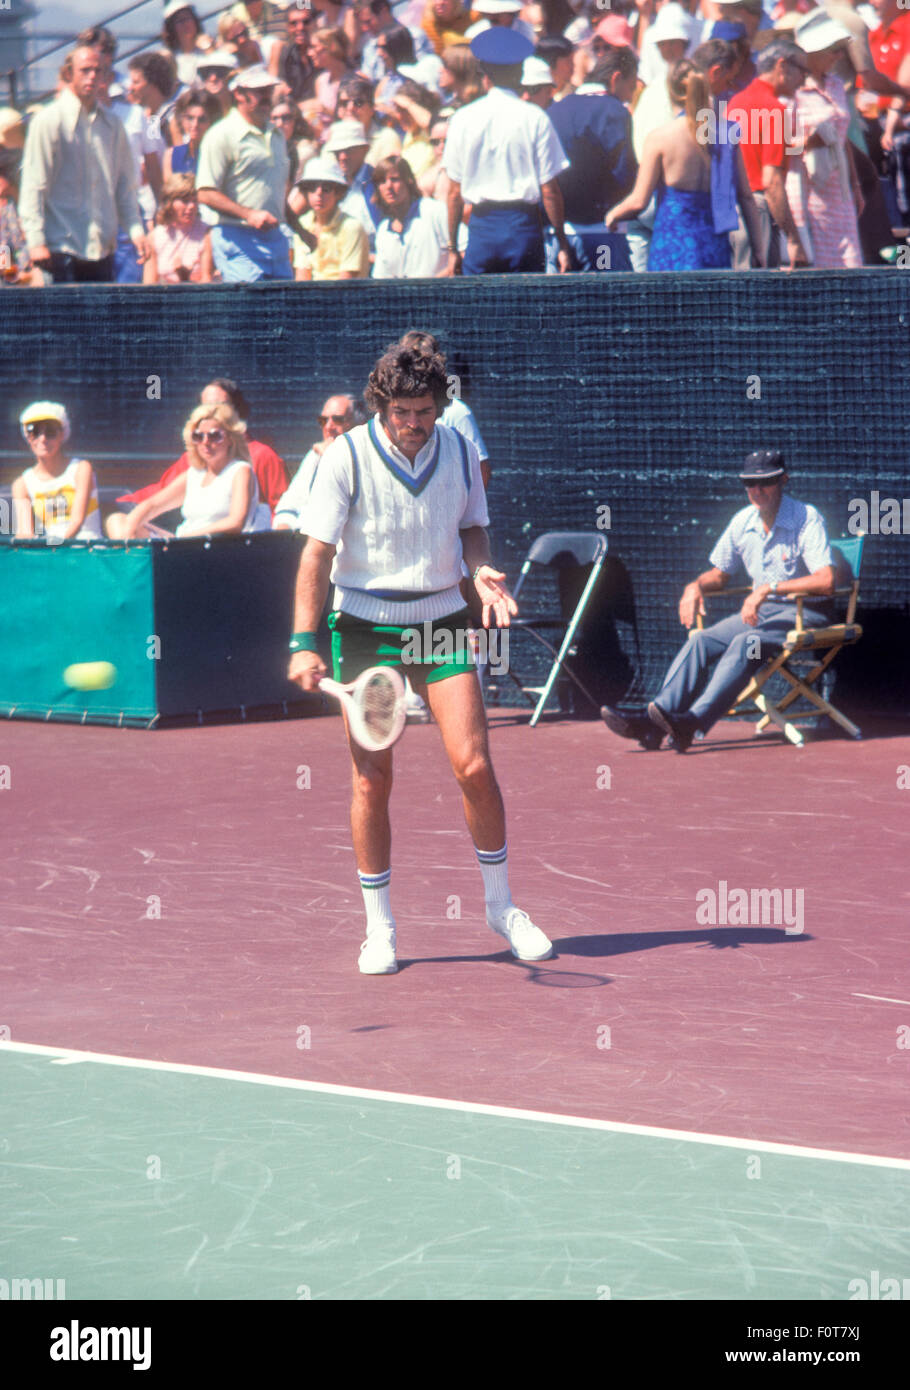 Tom Gorman in action at tennis tournament in September 1974. - Stock Image